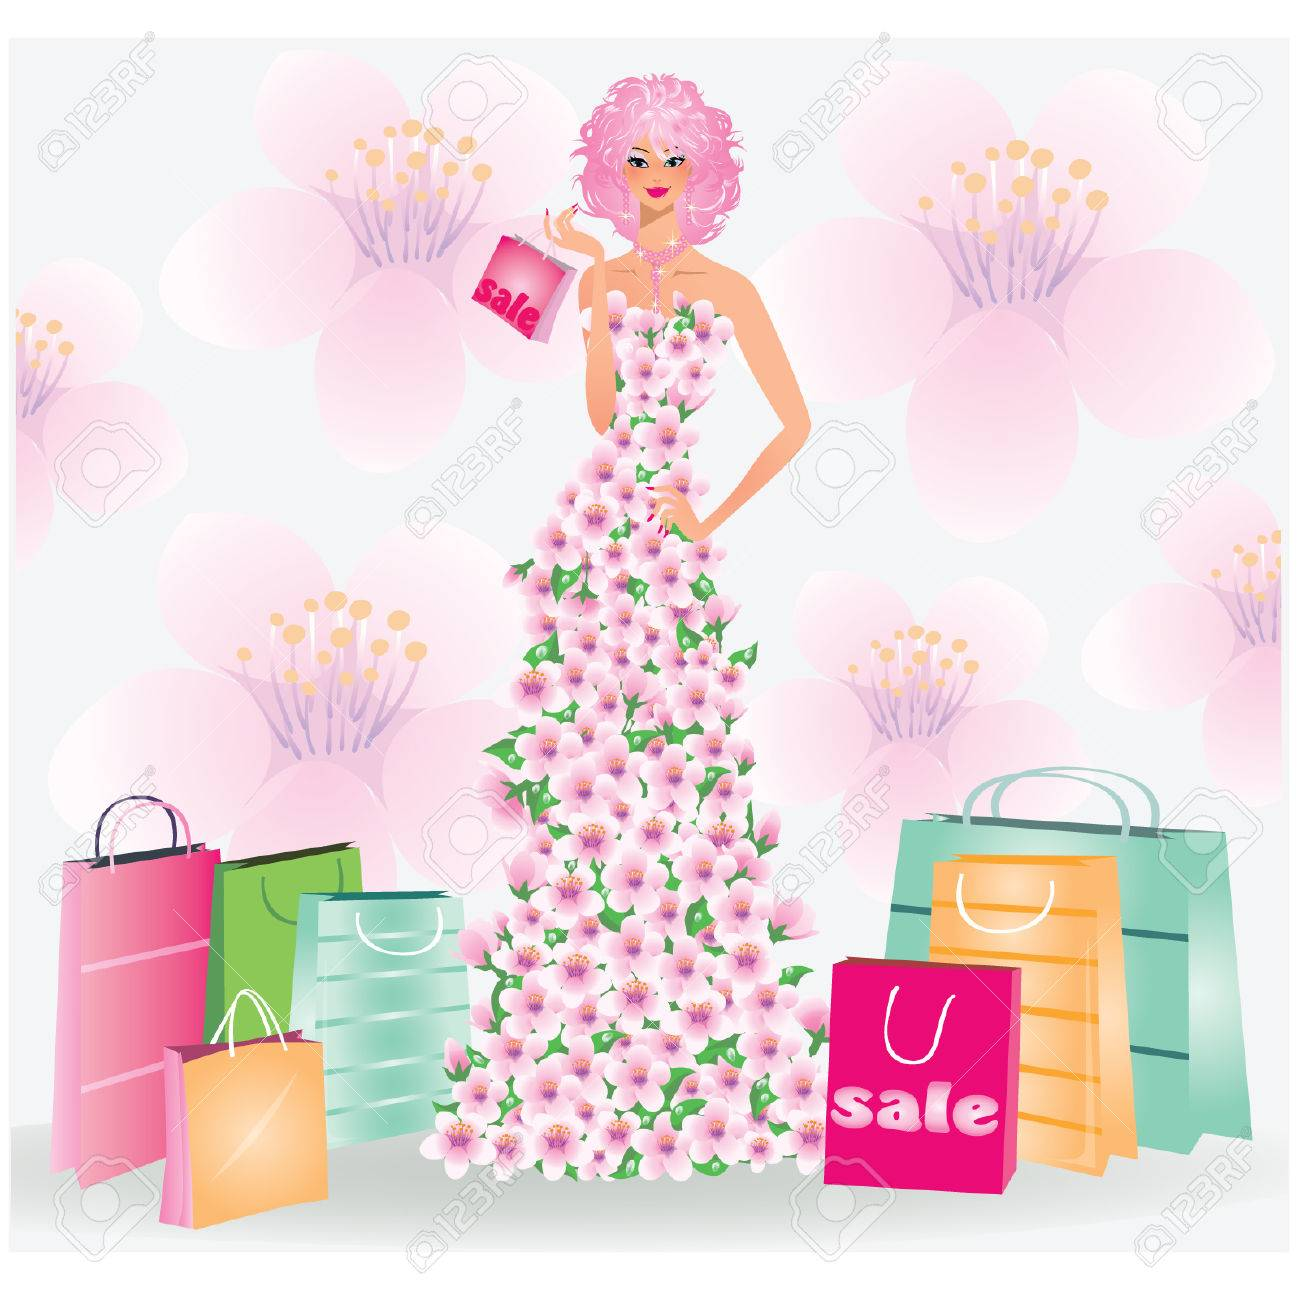 Spring sale girl. vector illustration Stock Vector - 8781973